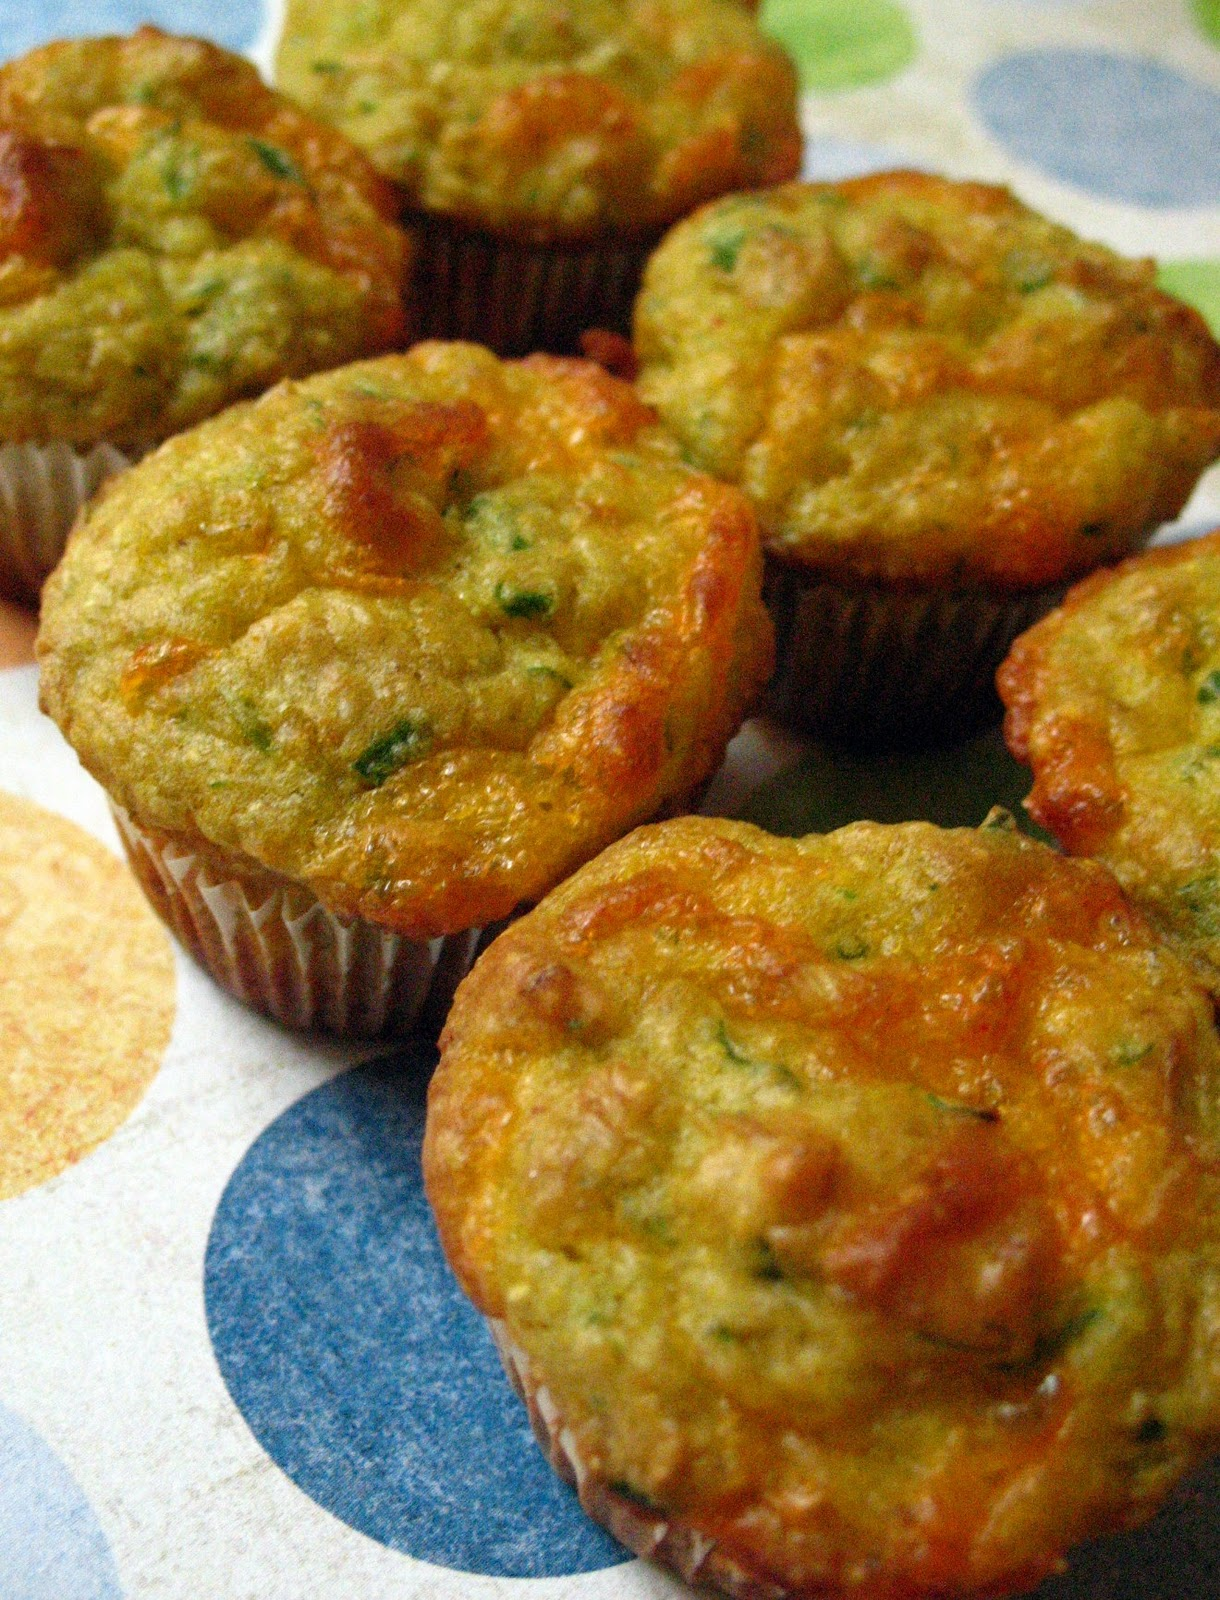 Munch: Savory Corn and Cheese Mini Muffins